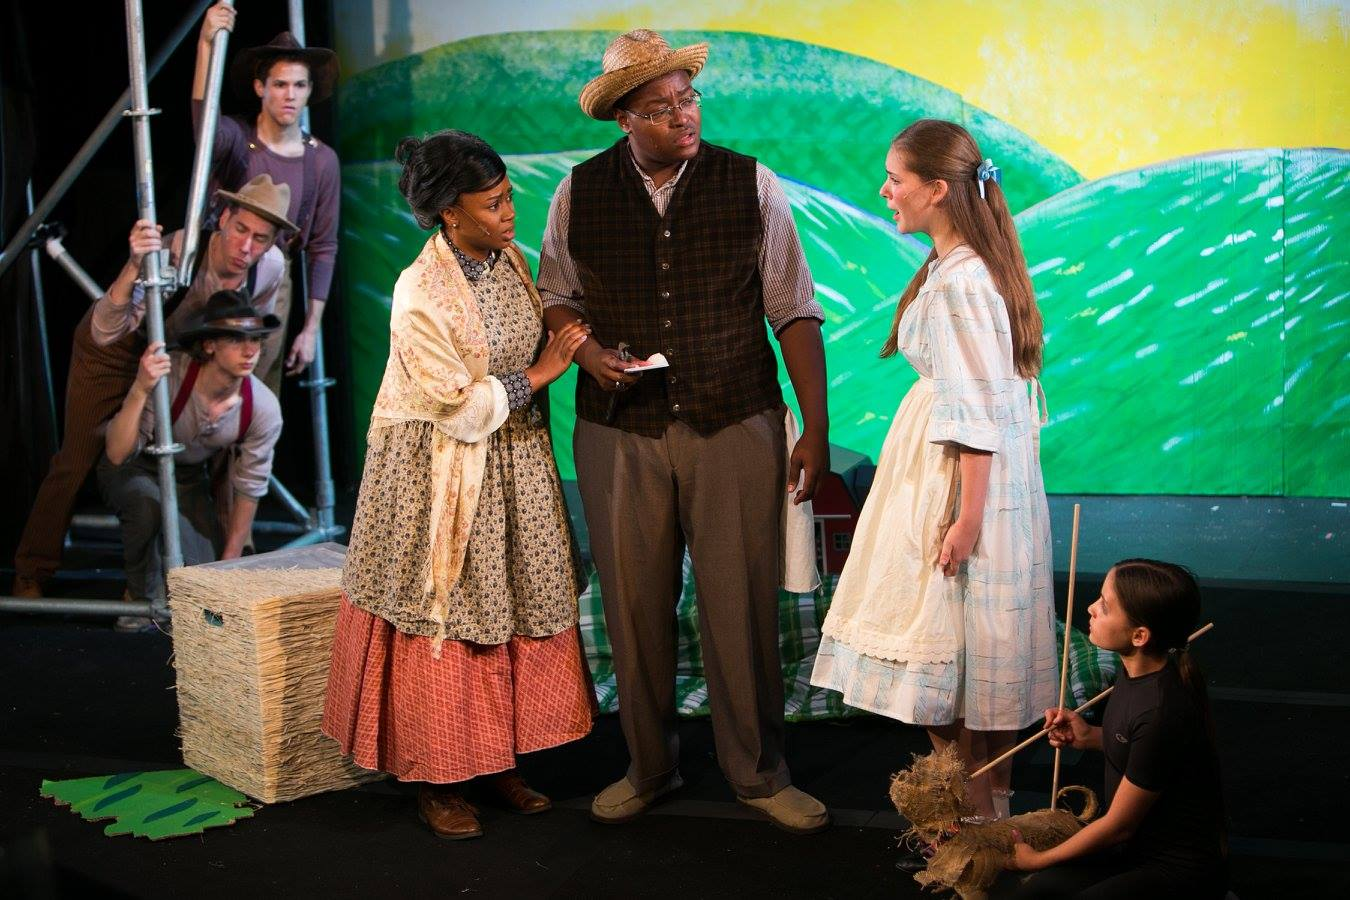 Farmhands, Aunt Em, Uncle Henry, Dorothy, and Toto in the Wizard of Oz costume design by Katharine Tarkulich